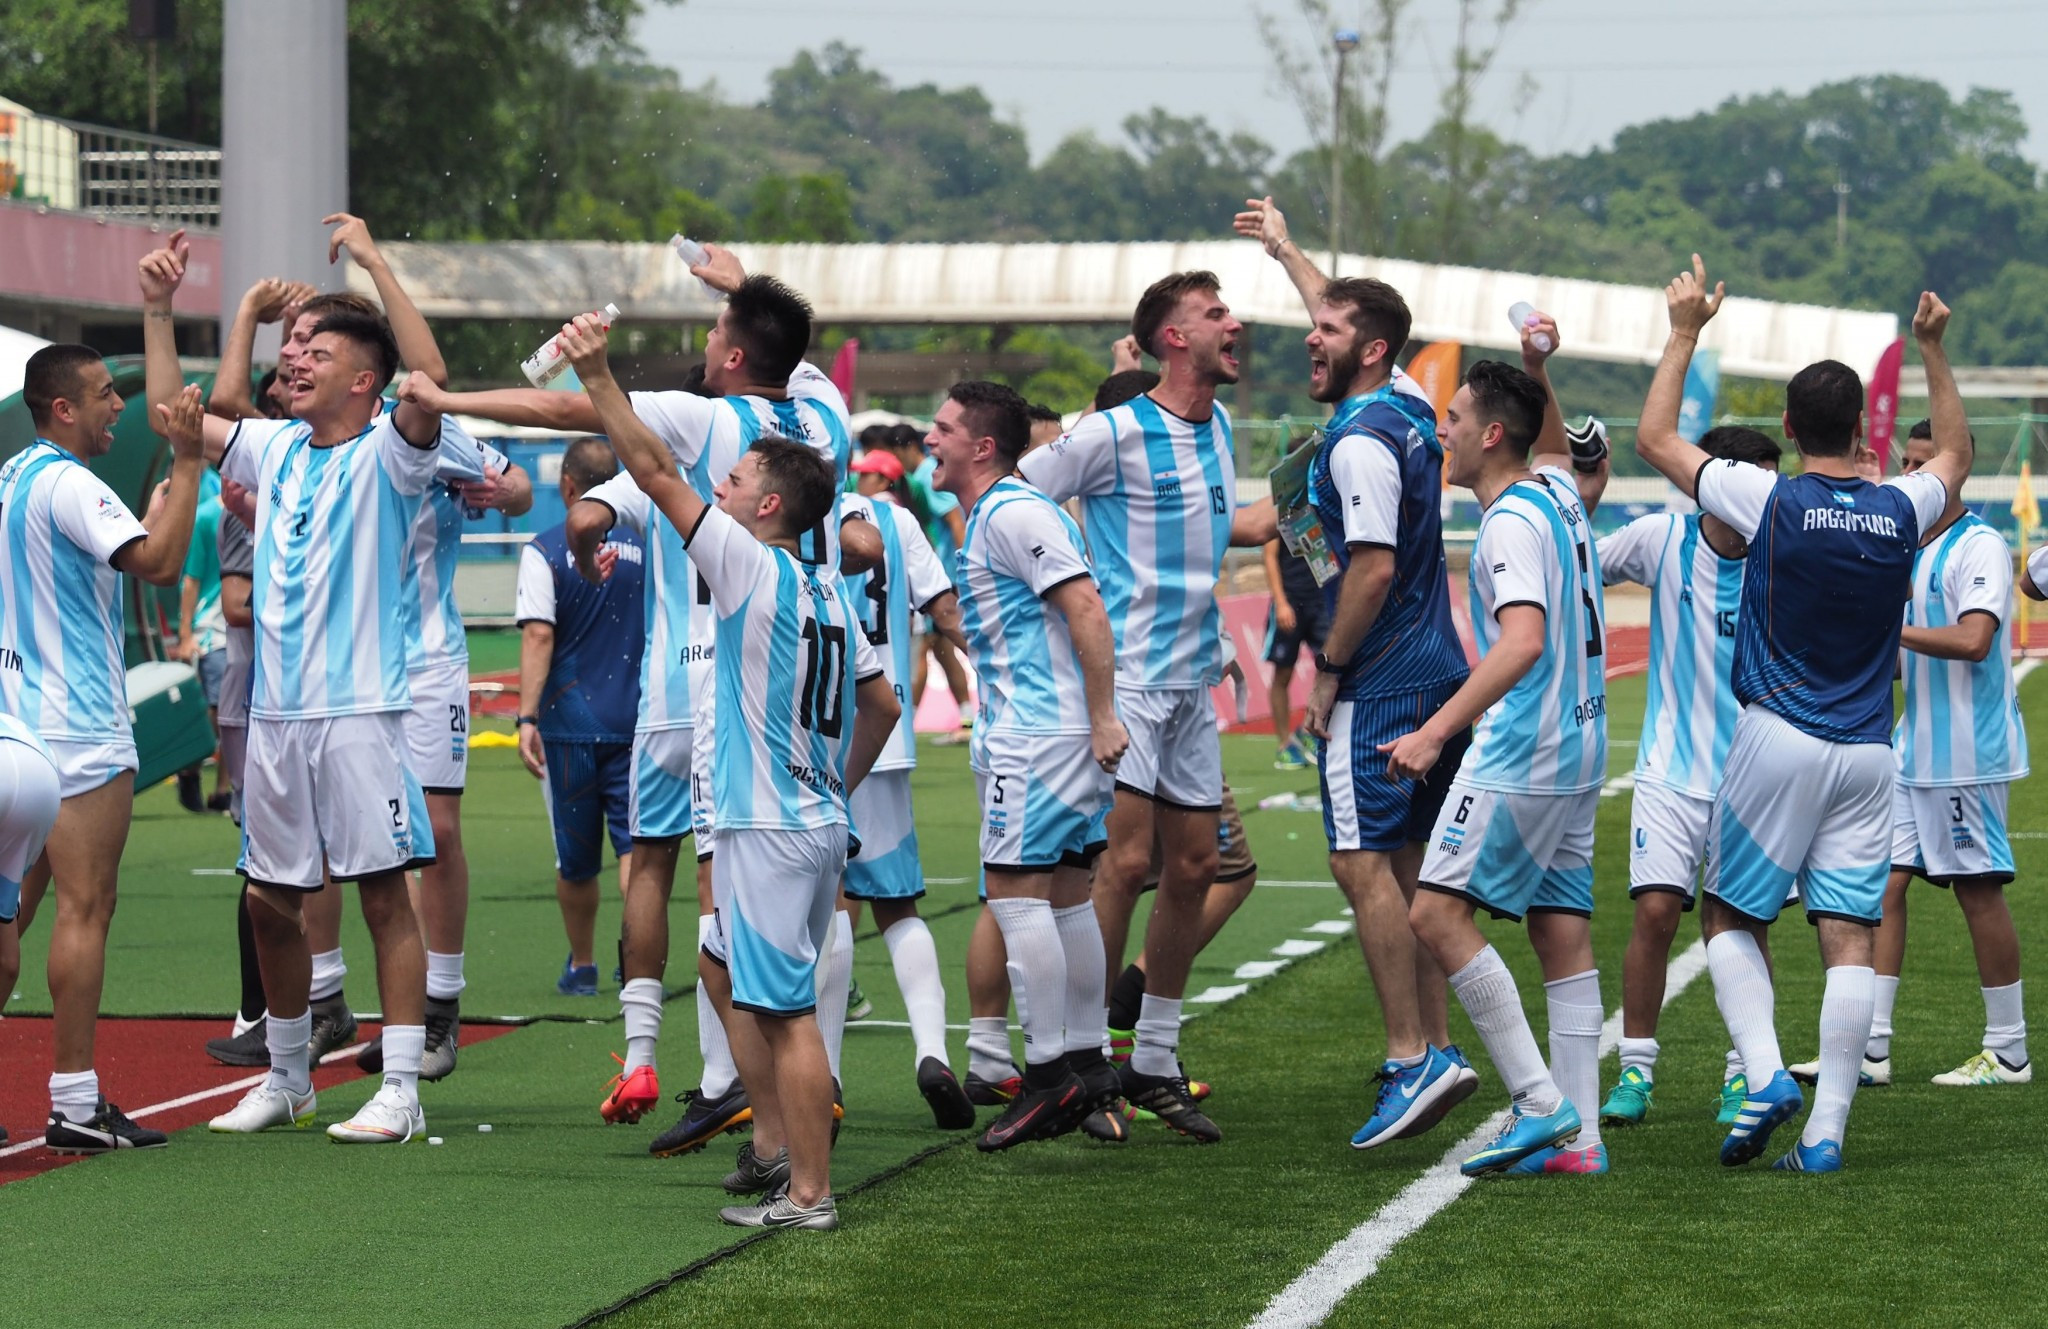 Argentina enjoy success as preliminary football competition continues at Taipei 2017